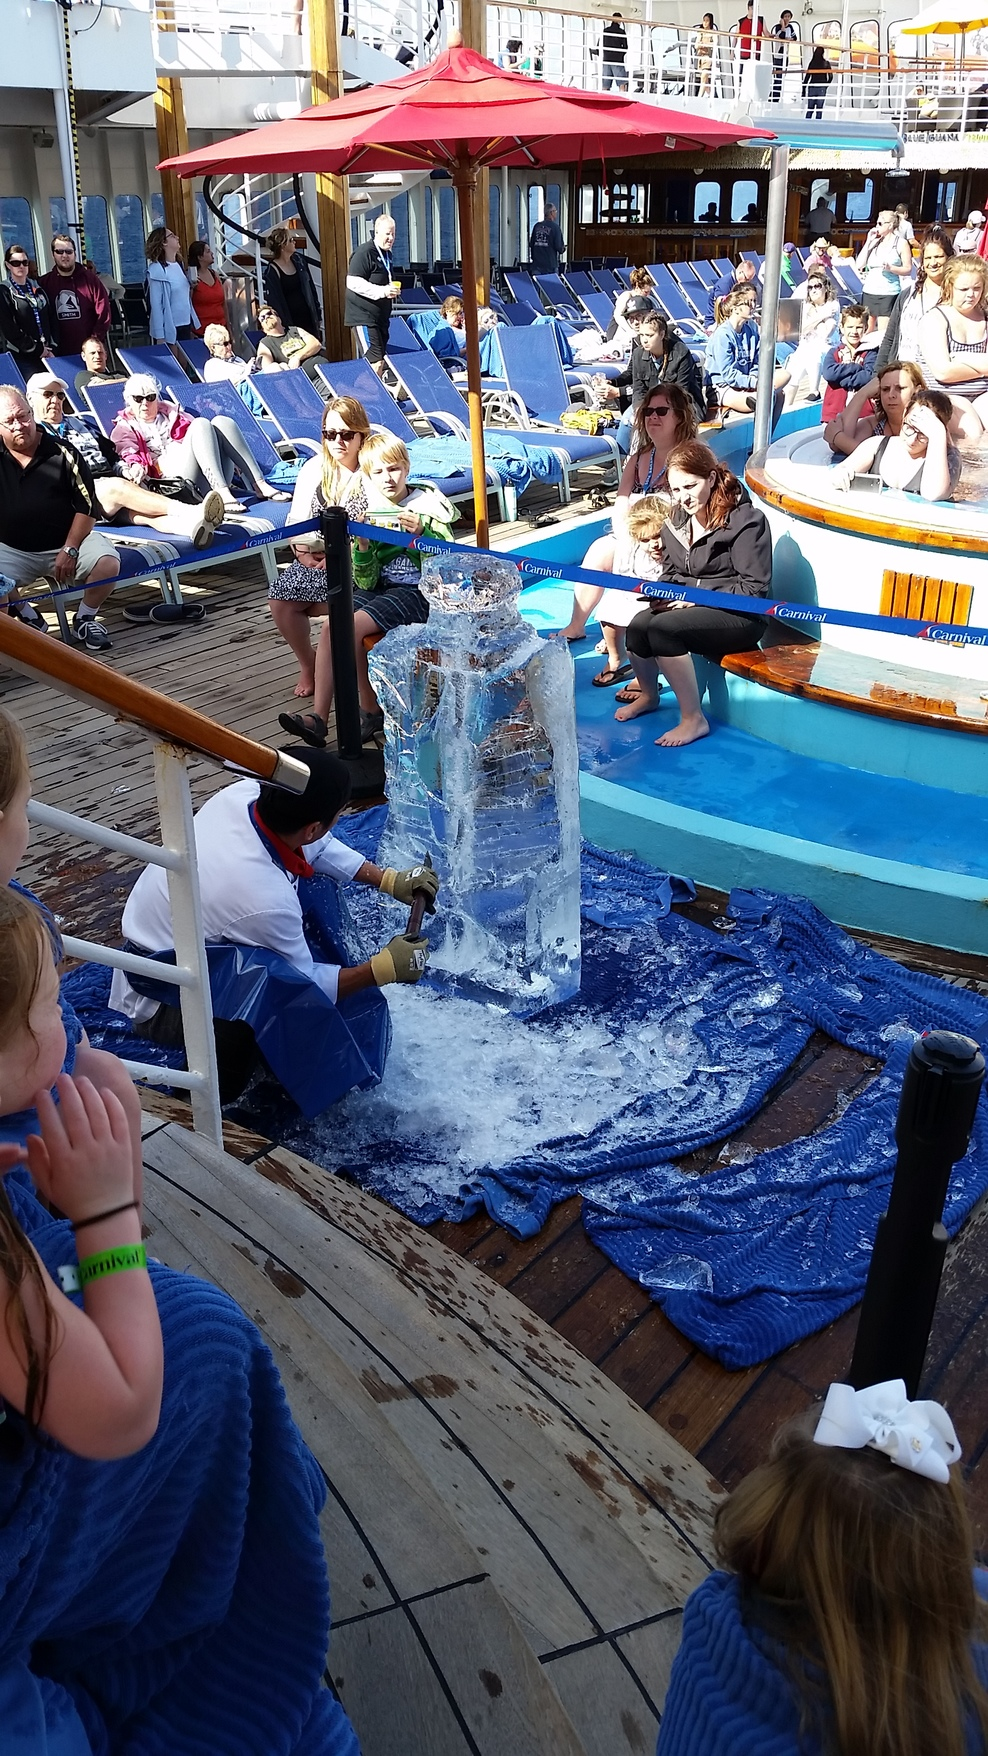 Ice carving at the Lido deck on the Carnival Ecstasy.